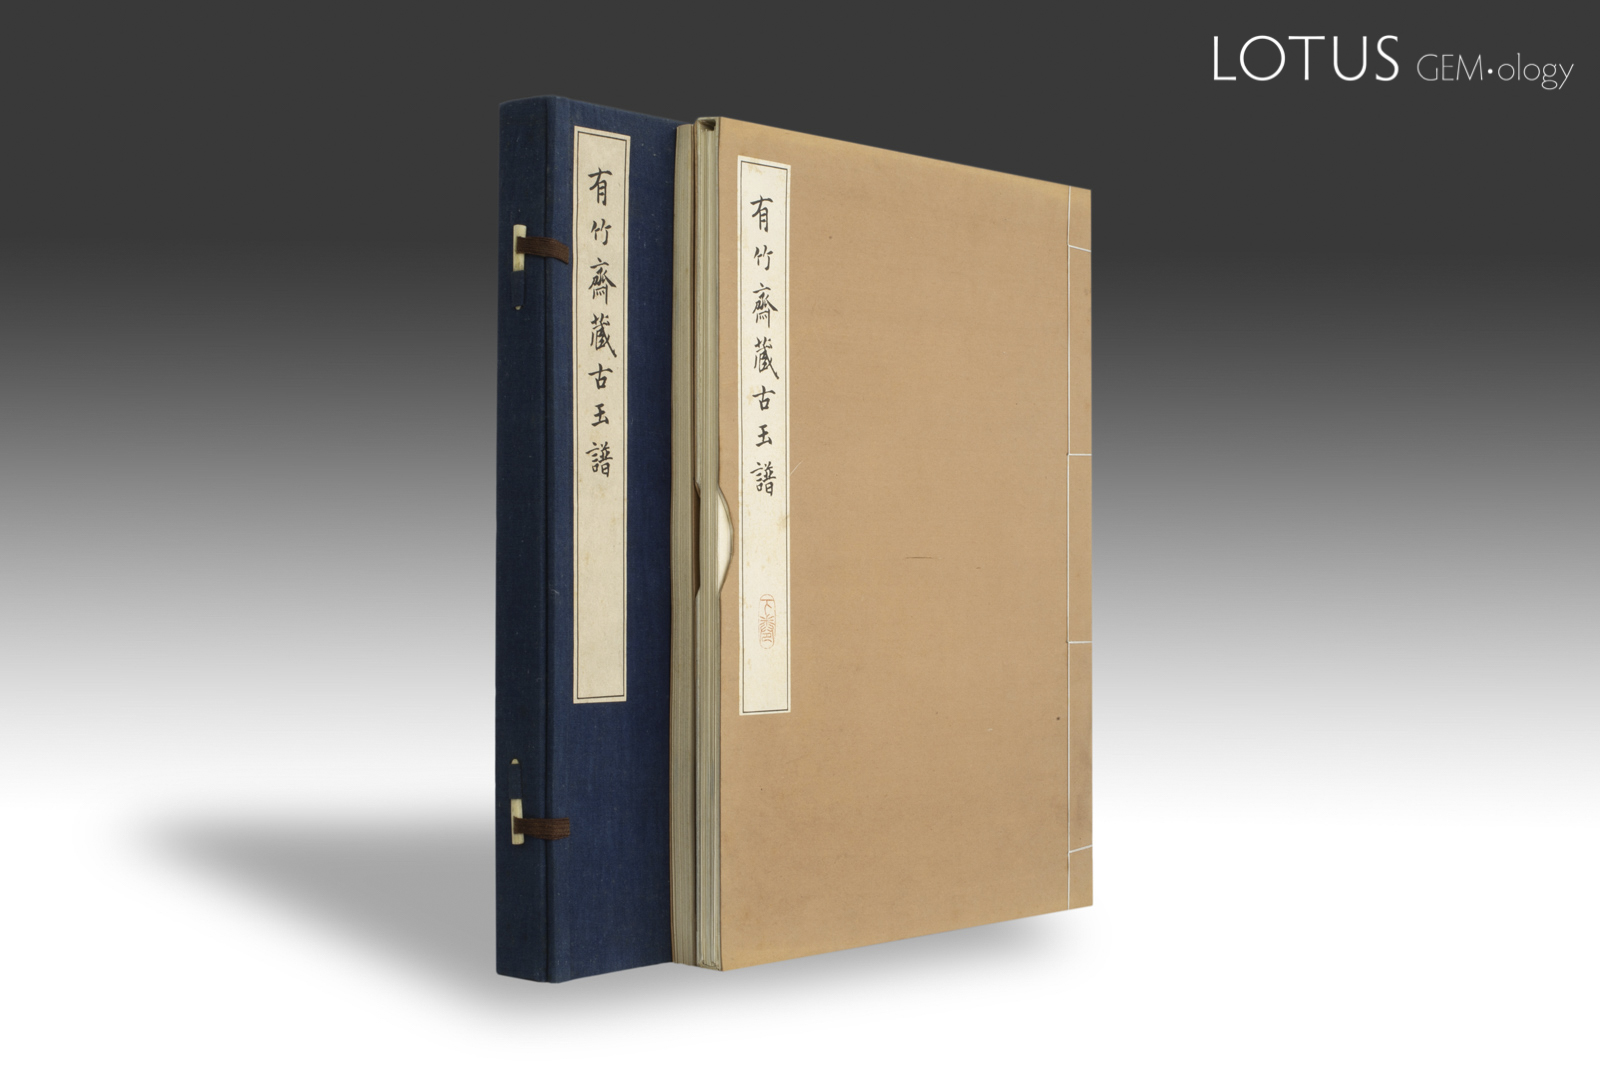 Kosaku Hamada's 1936 有竹斎蔵古玉譜 [Yuchikusaizo-Kogyokufu, or The Early Chinese Jades in the Collection of the Late Riichi Uyeno]. The two volumes were housed in a traditional Japanese case, making this particularly collectable.